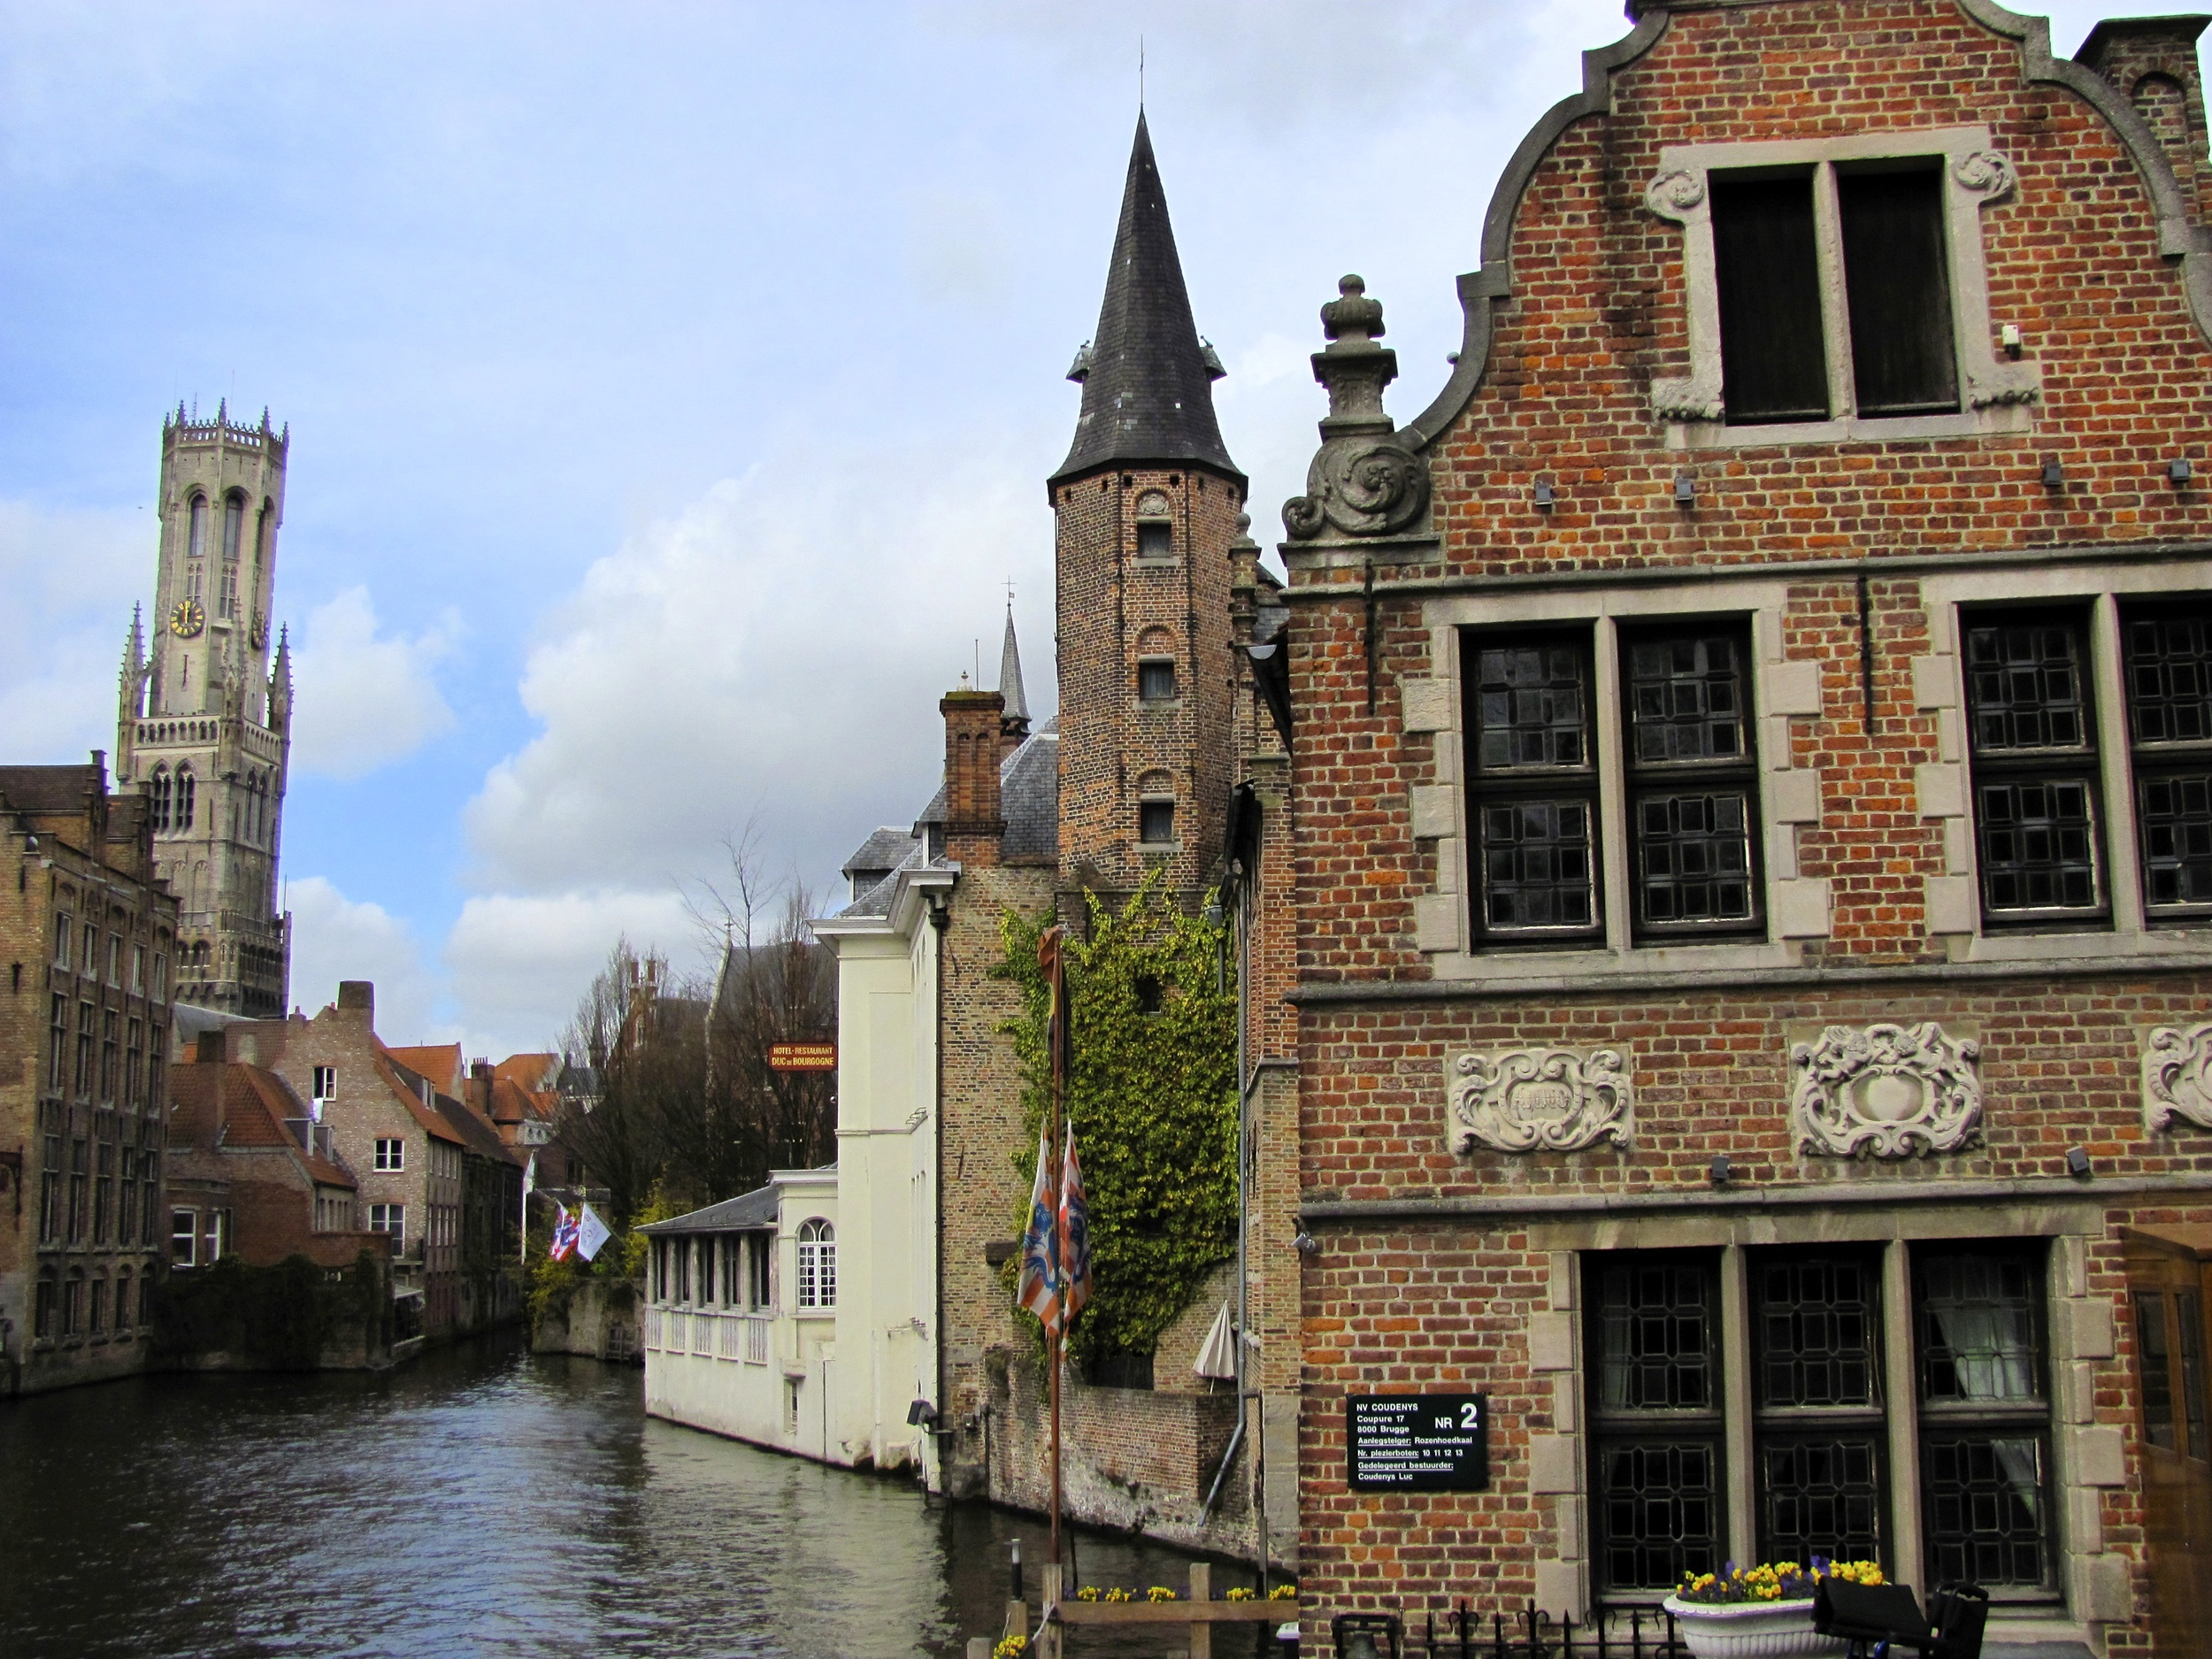 View 2 down the Dijver canal, Bruges, Belgium, VHS 2010